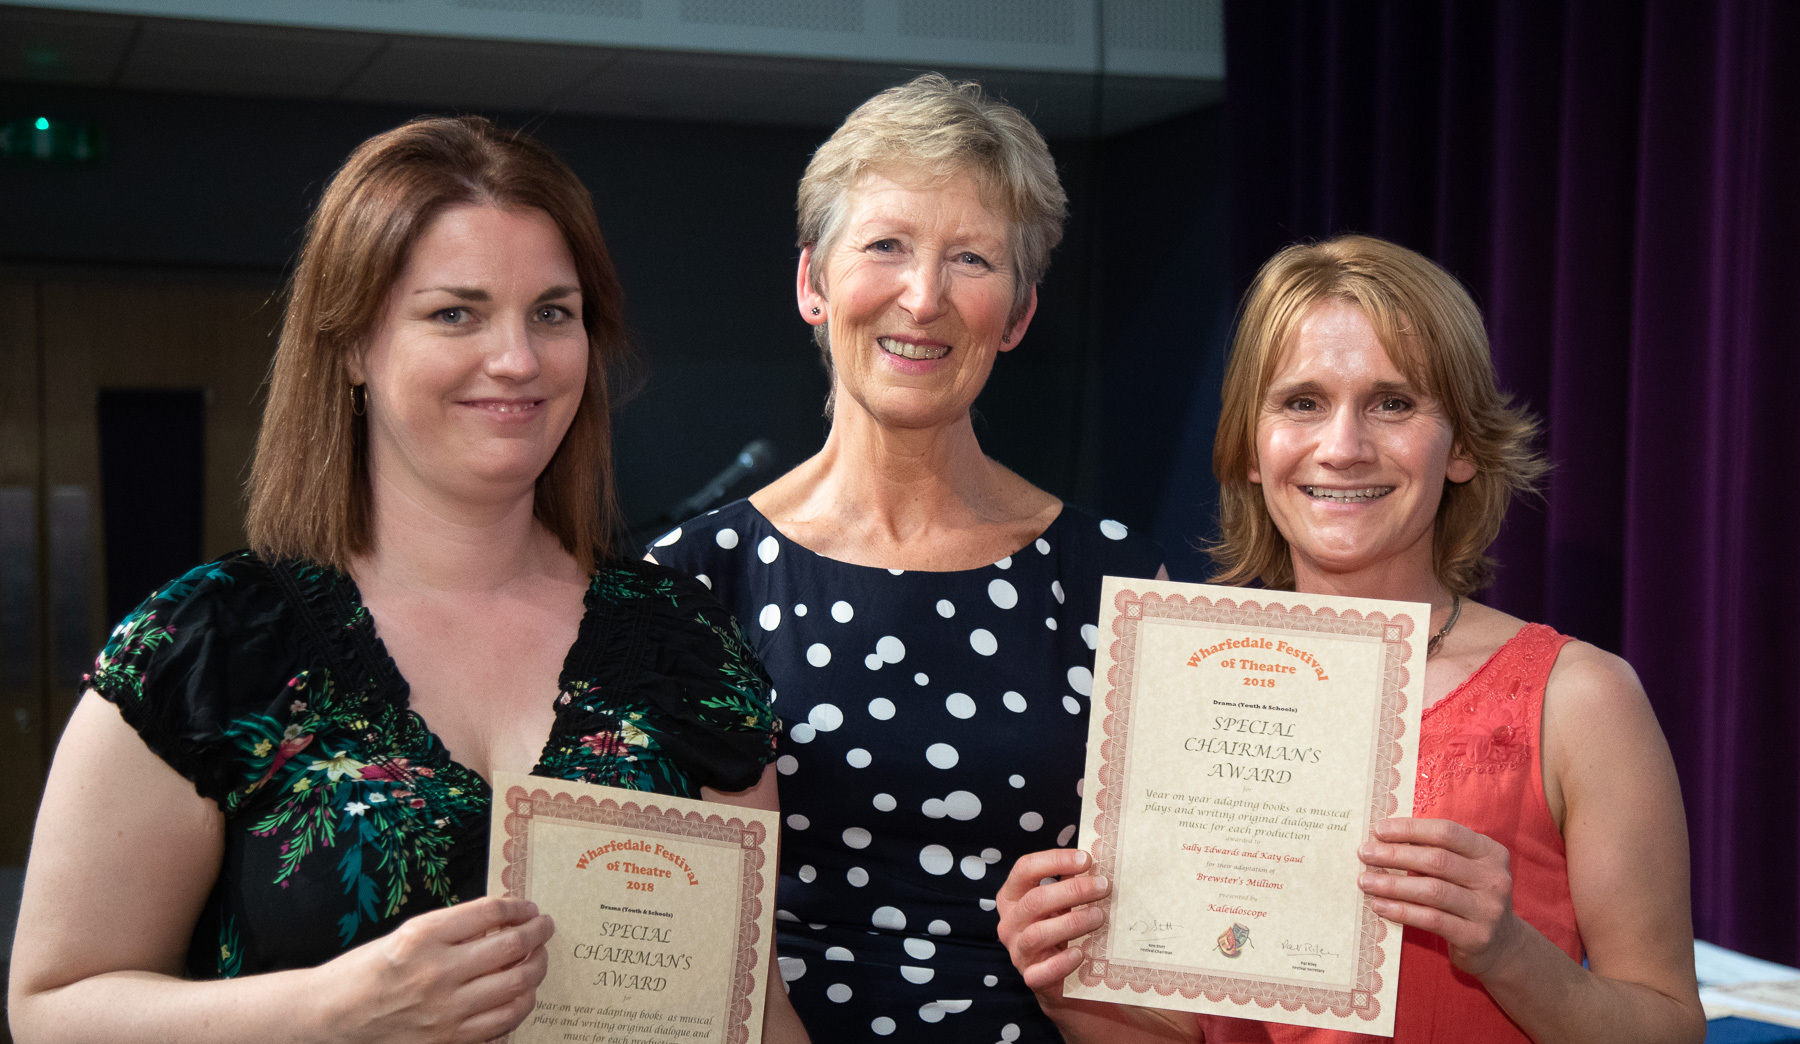 SKILL: Sally Edwards and Katy Gaul, director and musical director of Kaleidoscope, who won a Special Chairman's Award